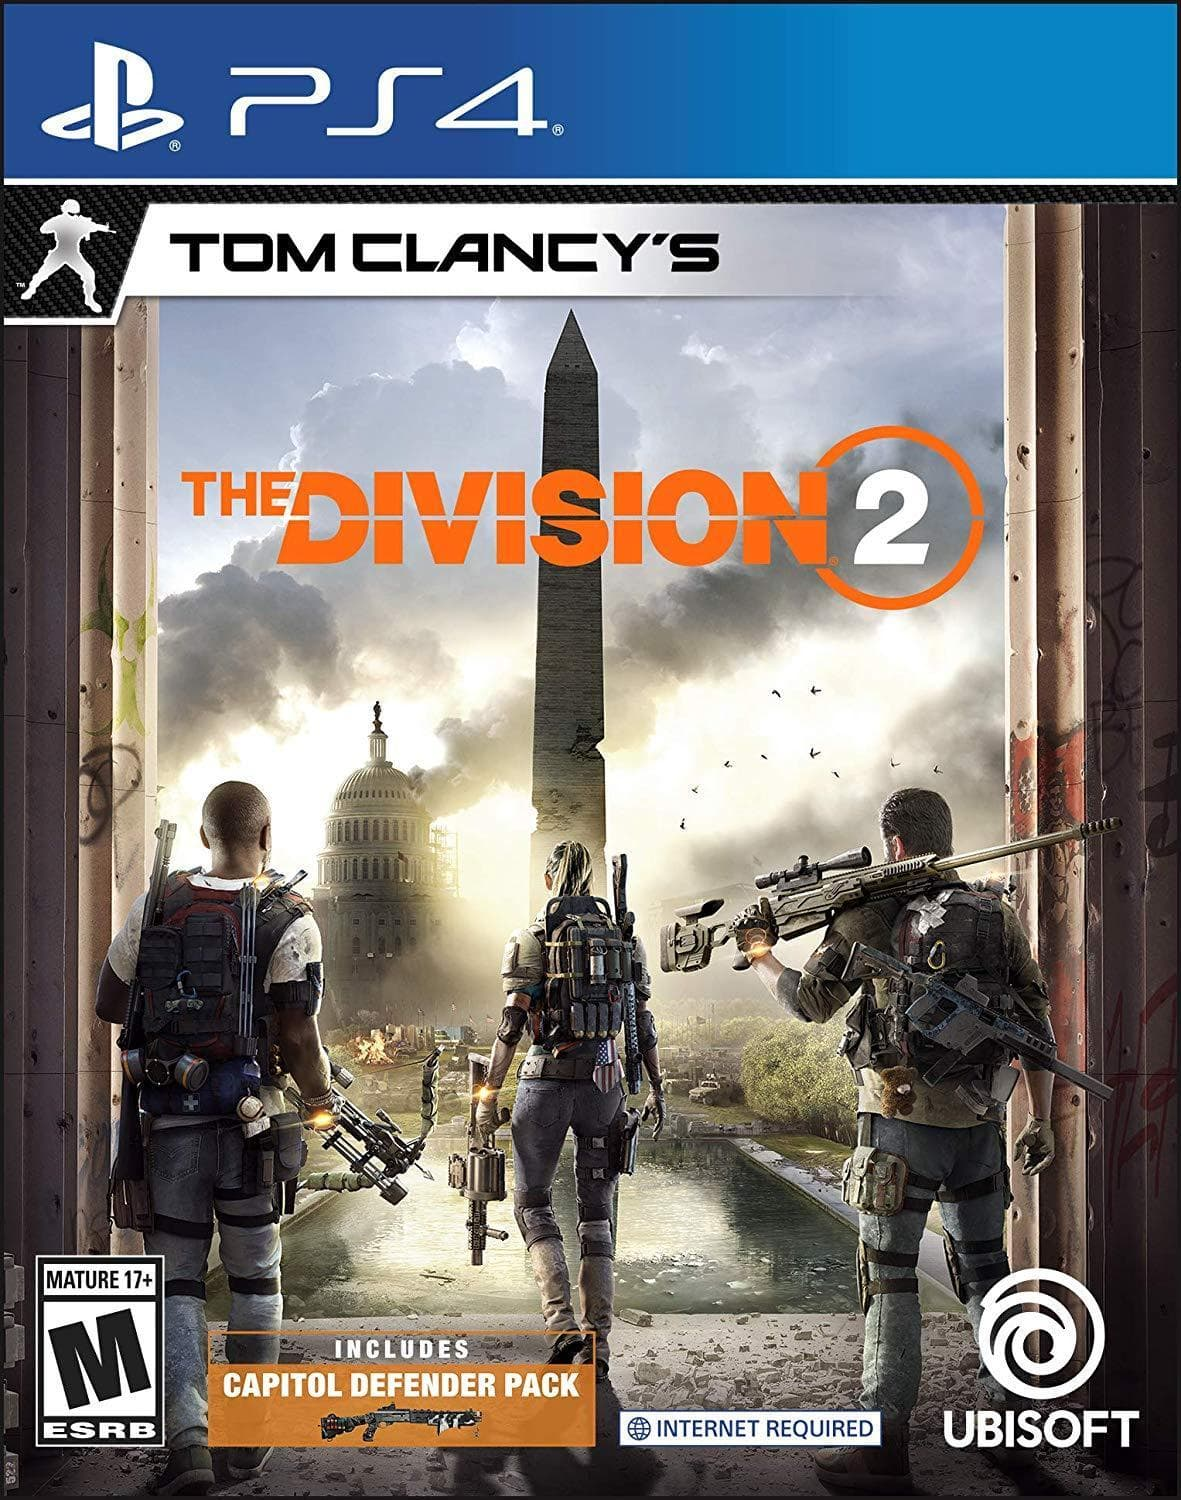 GameStop Summer Sale: The Division 2, Kingdom Hearts III, AC